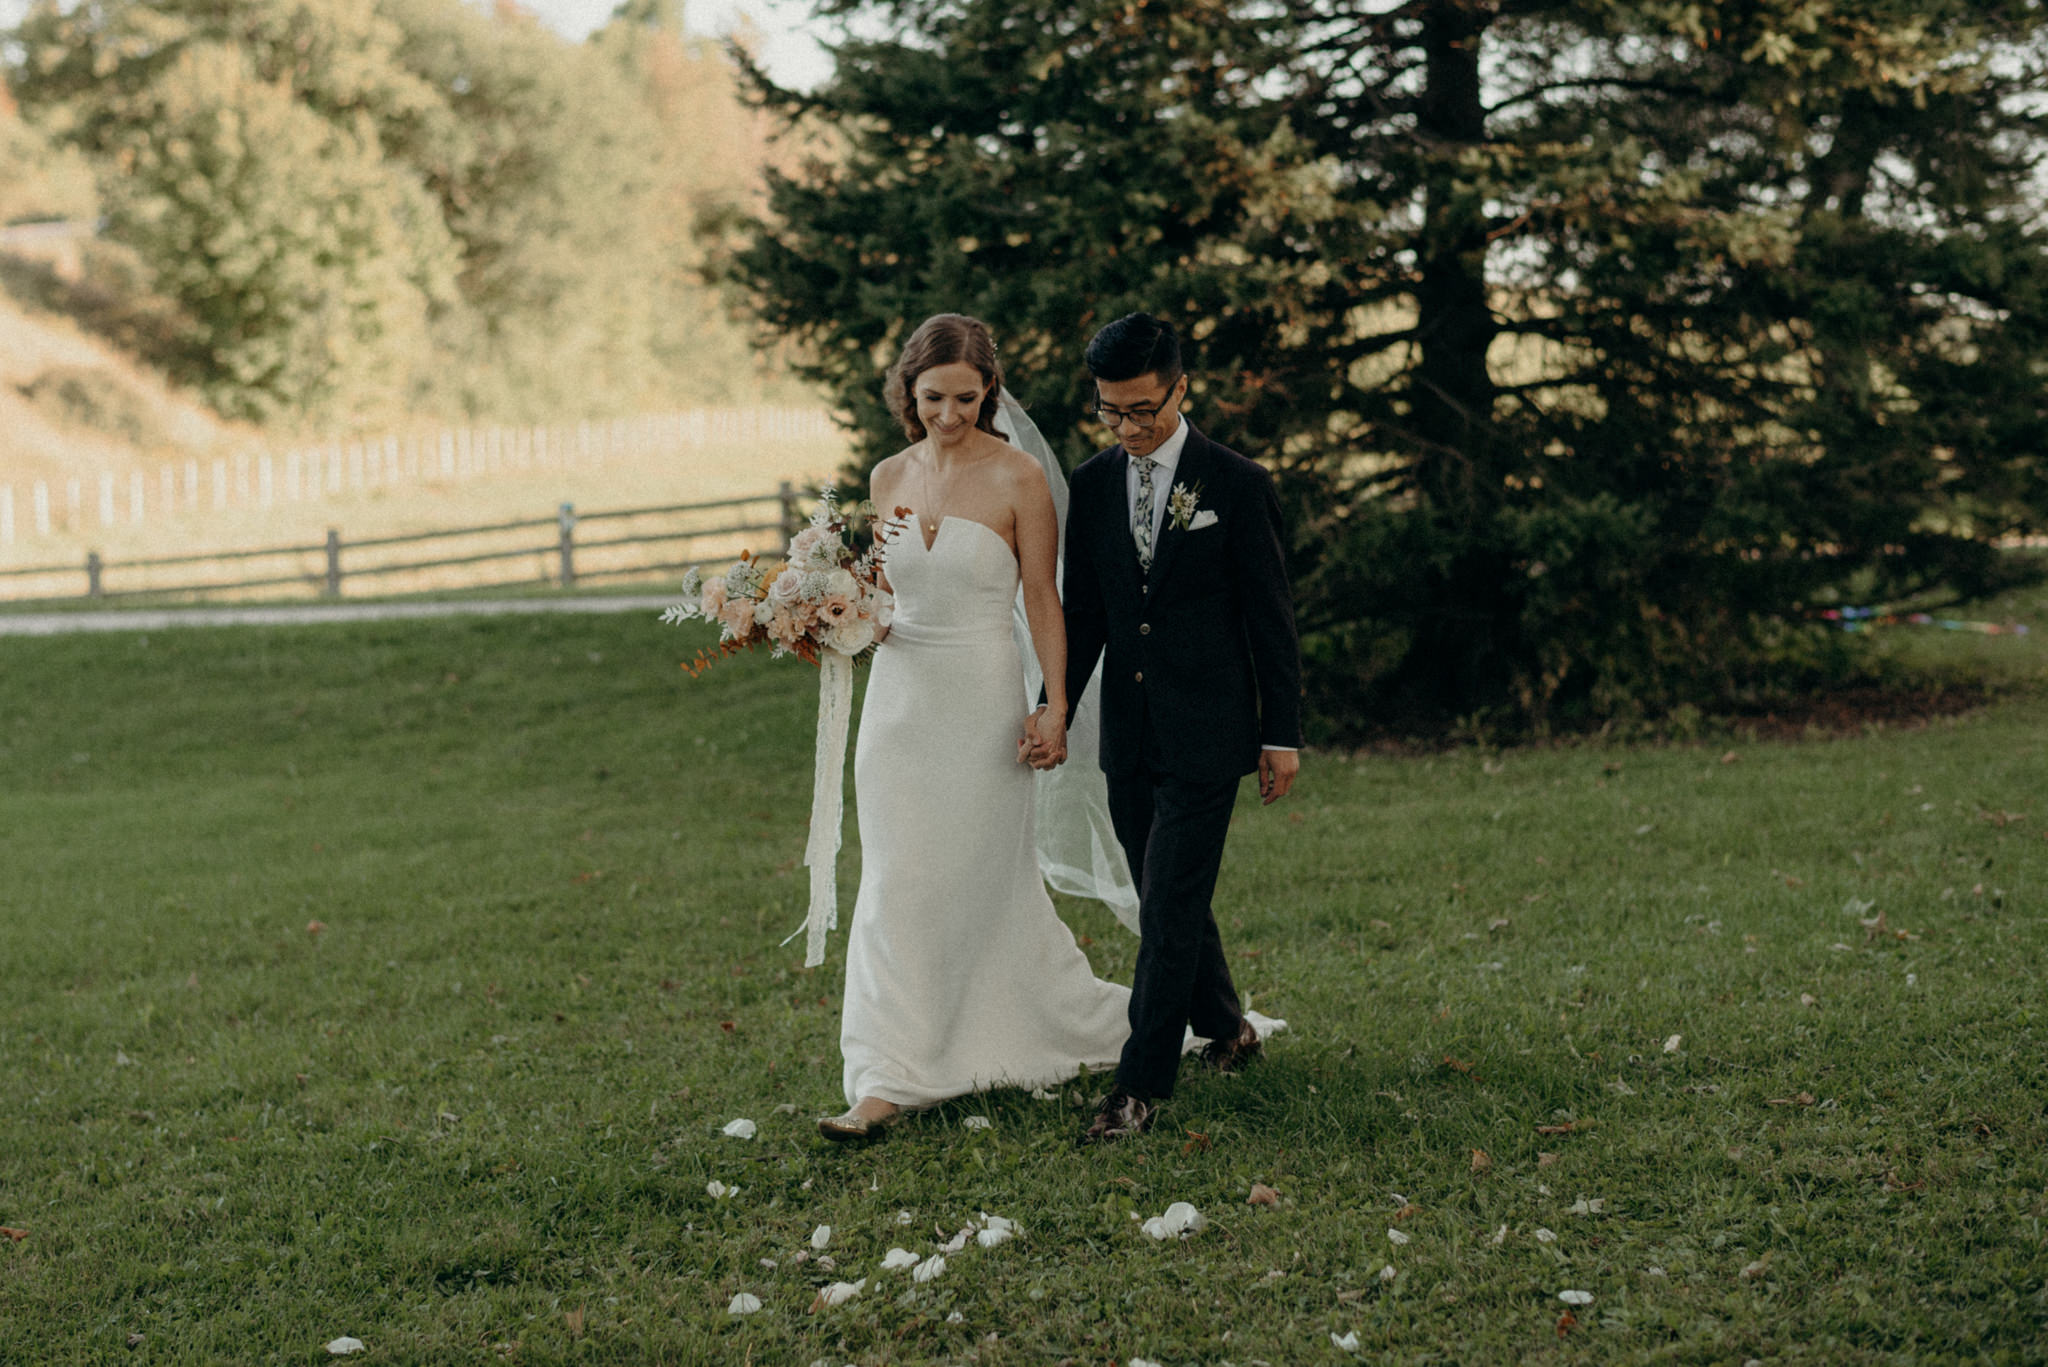 bride and groom walking holding hands down aisle